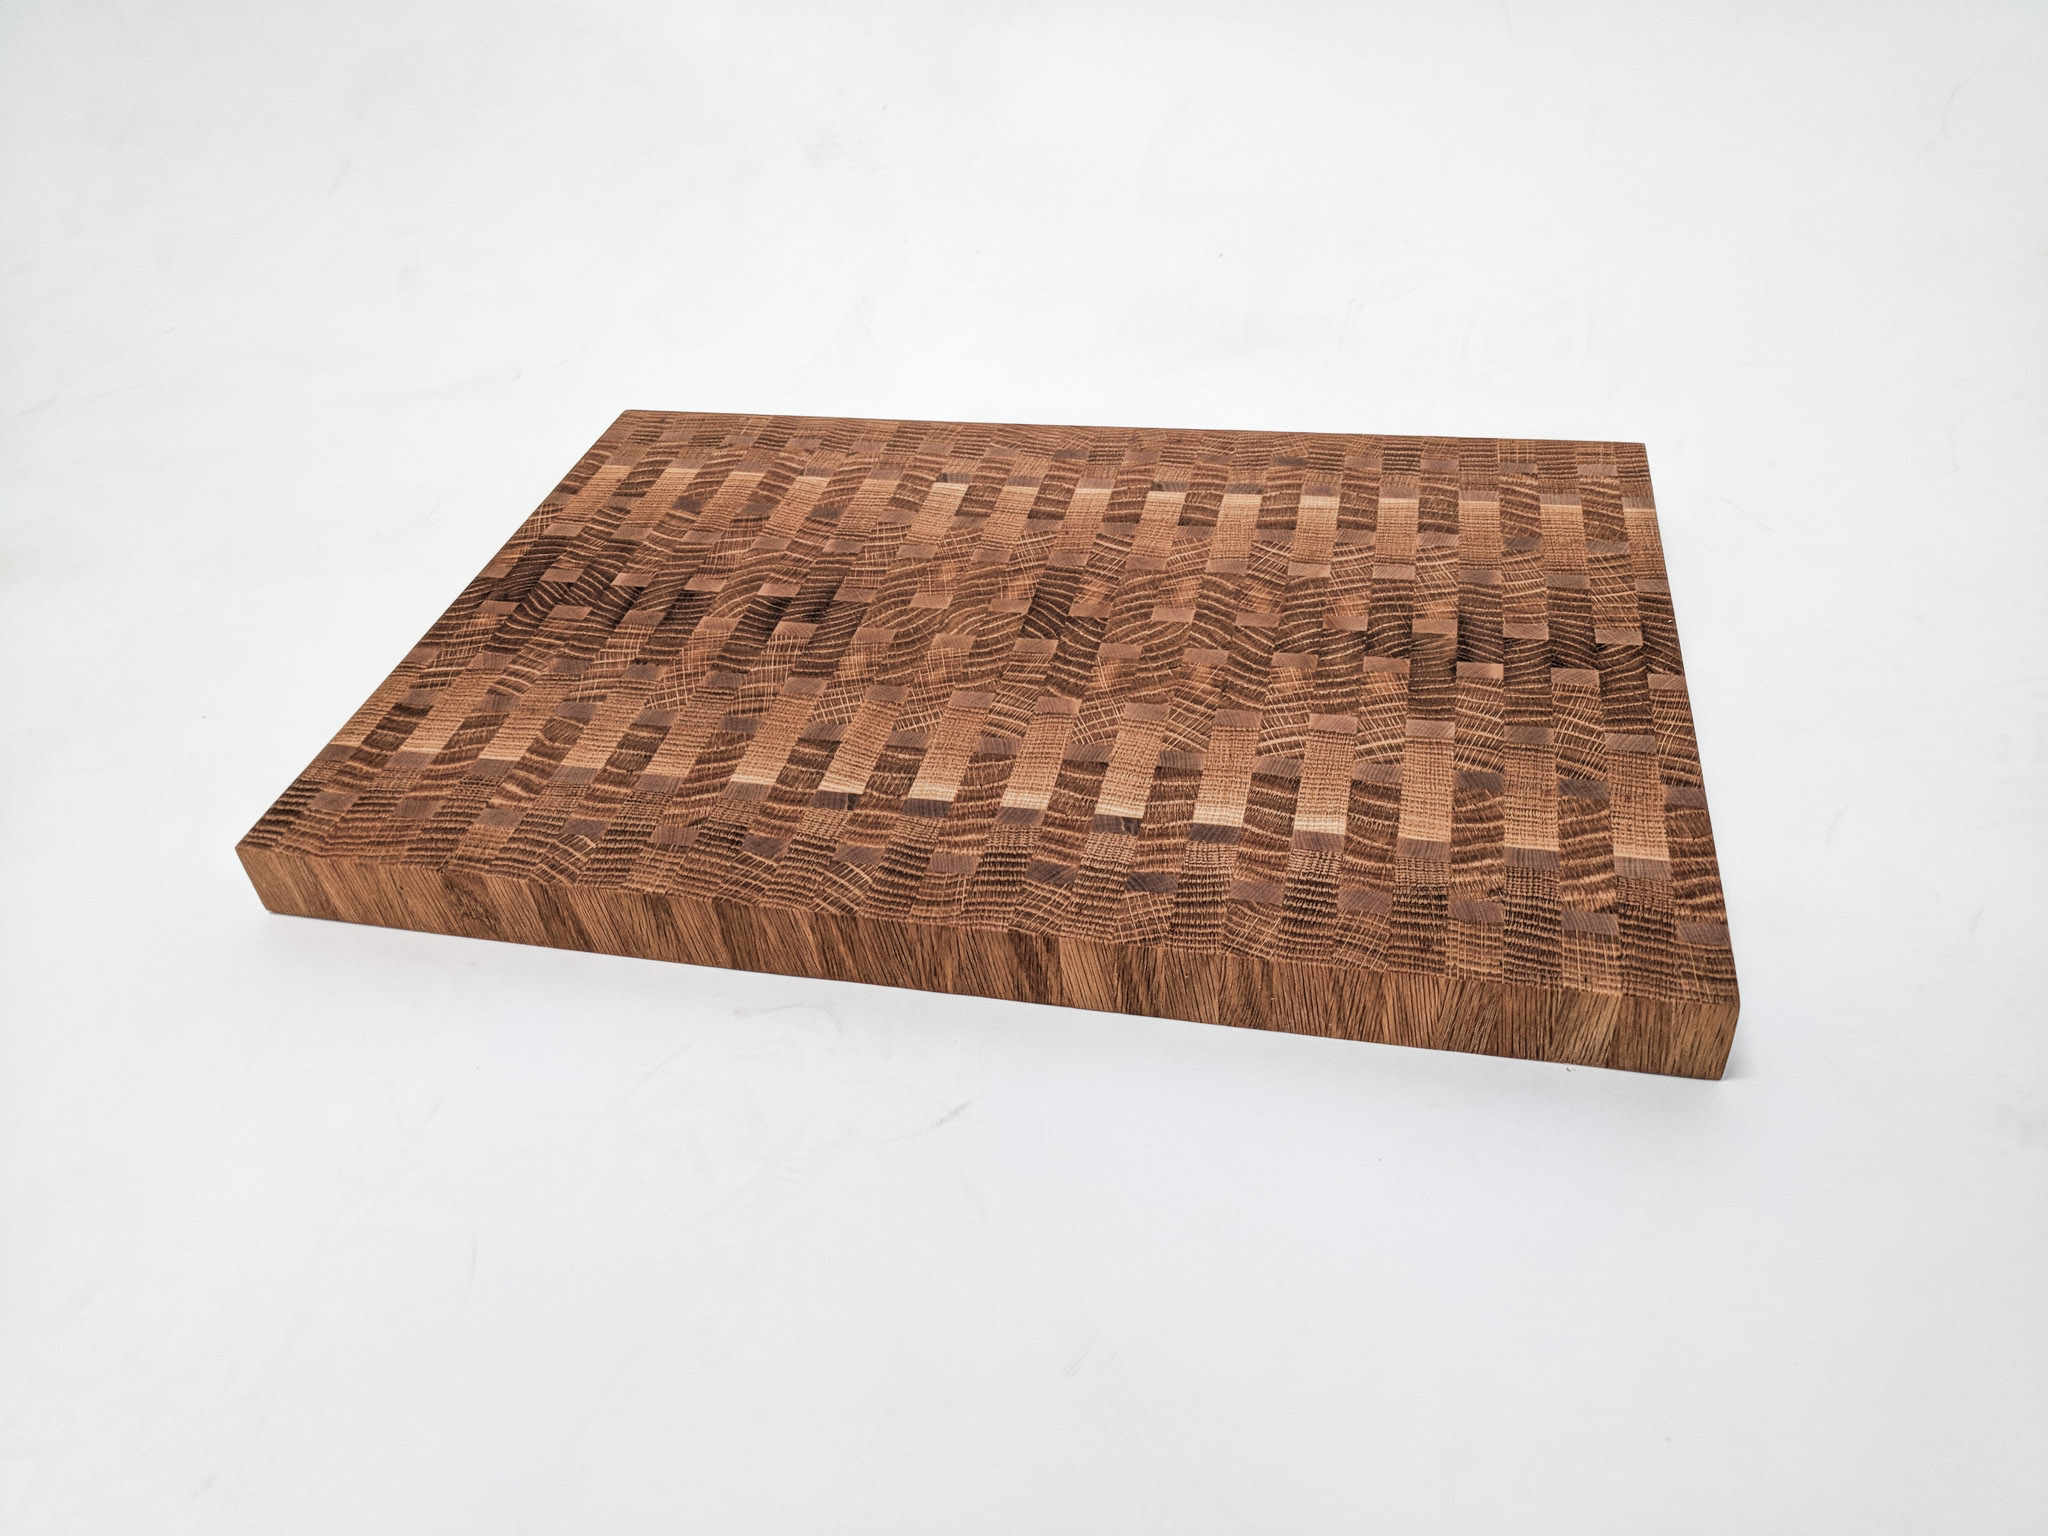 CuttingBoards-071418-2.jpg